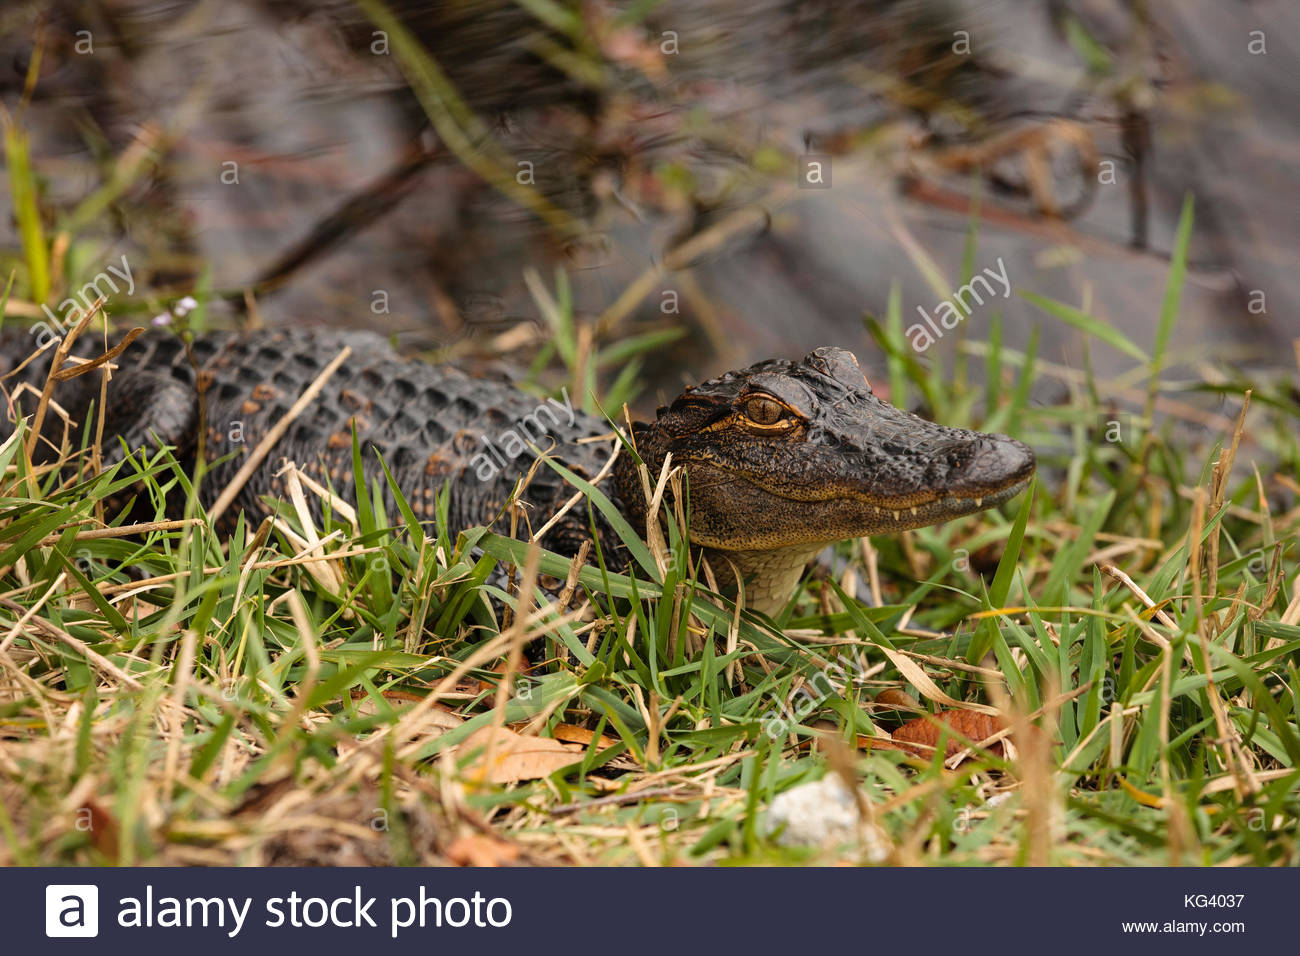 american alligator essay Alligator calls are heard and the water vibrates from the sounds american crocodiles and alligators this is an informative video from national geographic about alligators and crocodiles that live in the everglades.